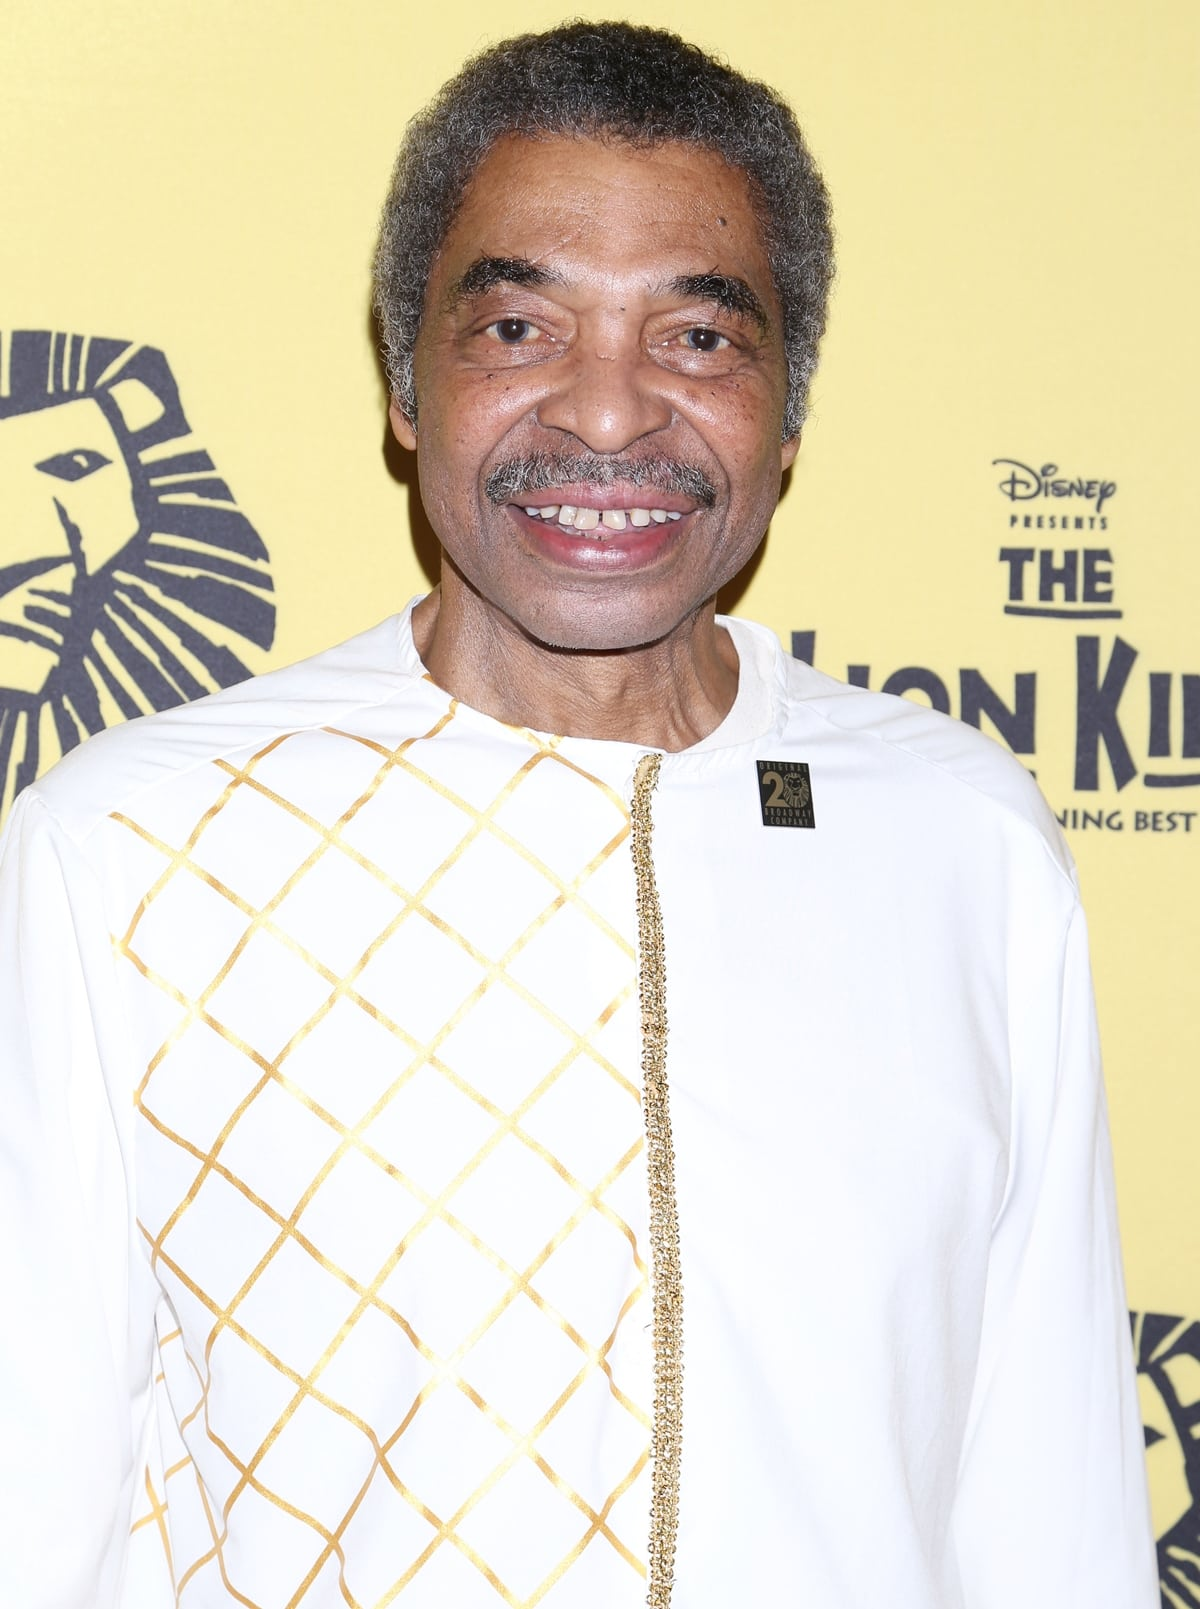 American actor and singer Samuel Edward Wright voiced Sebastian the crab in Disney's animated classic The Little Mermaid